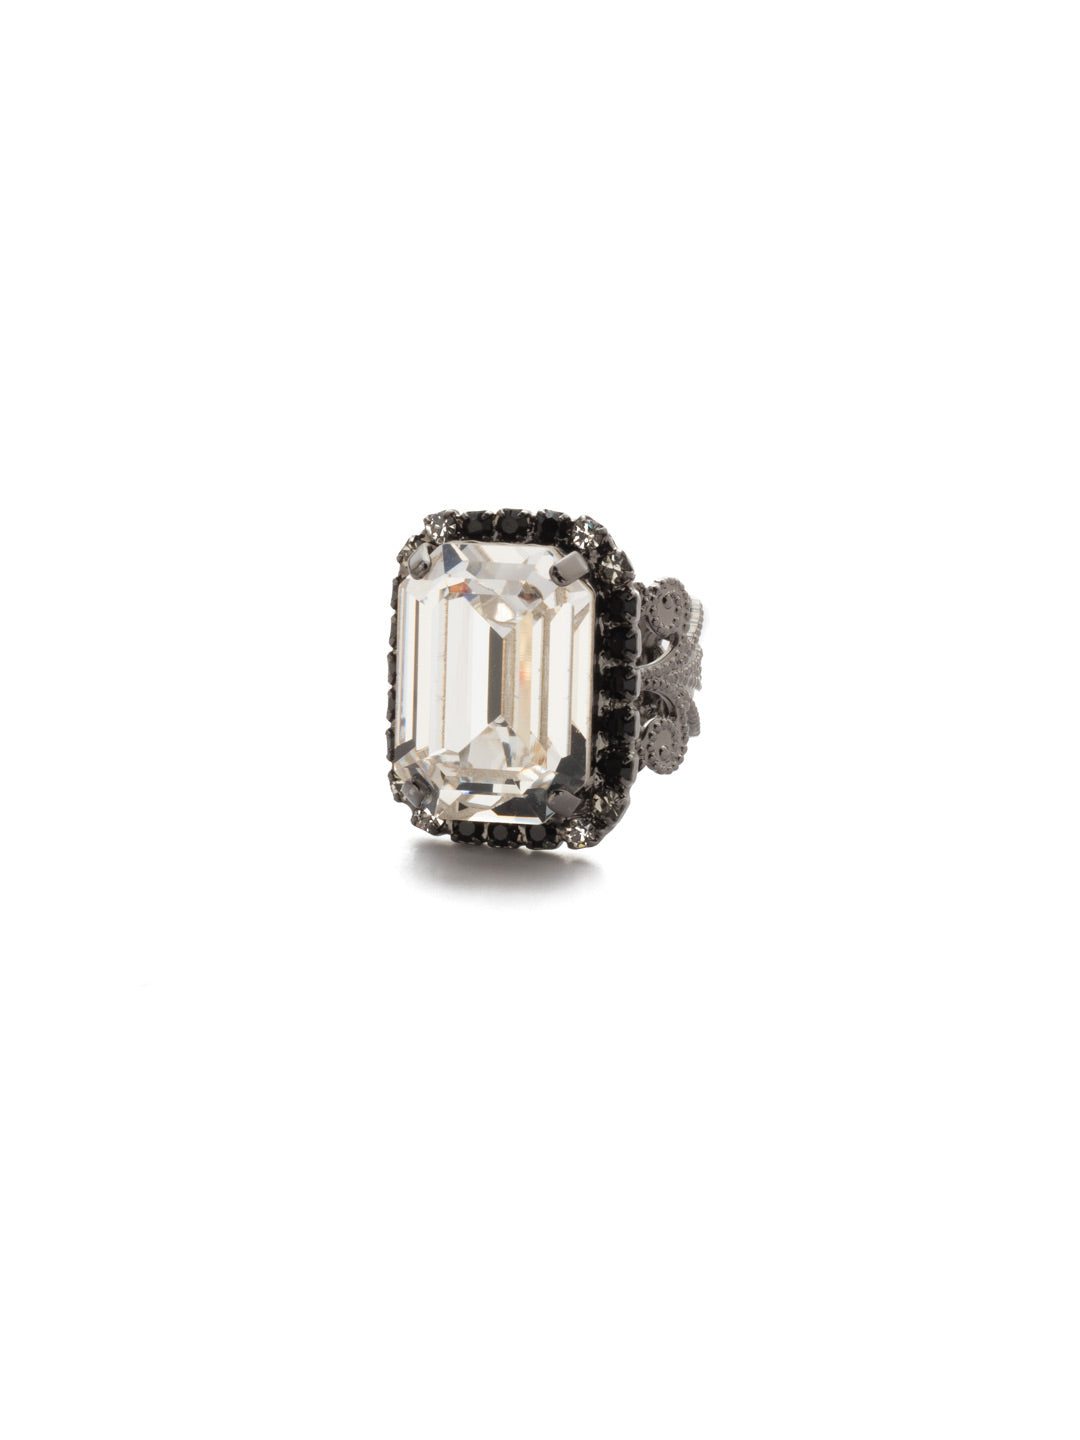 Petite Emerald-Cut Cocktail Ring - RCF9GMMMO